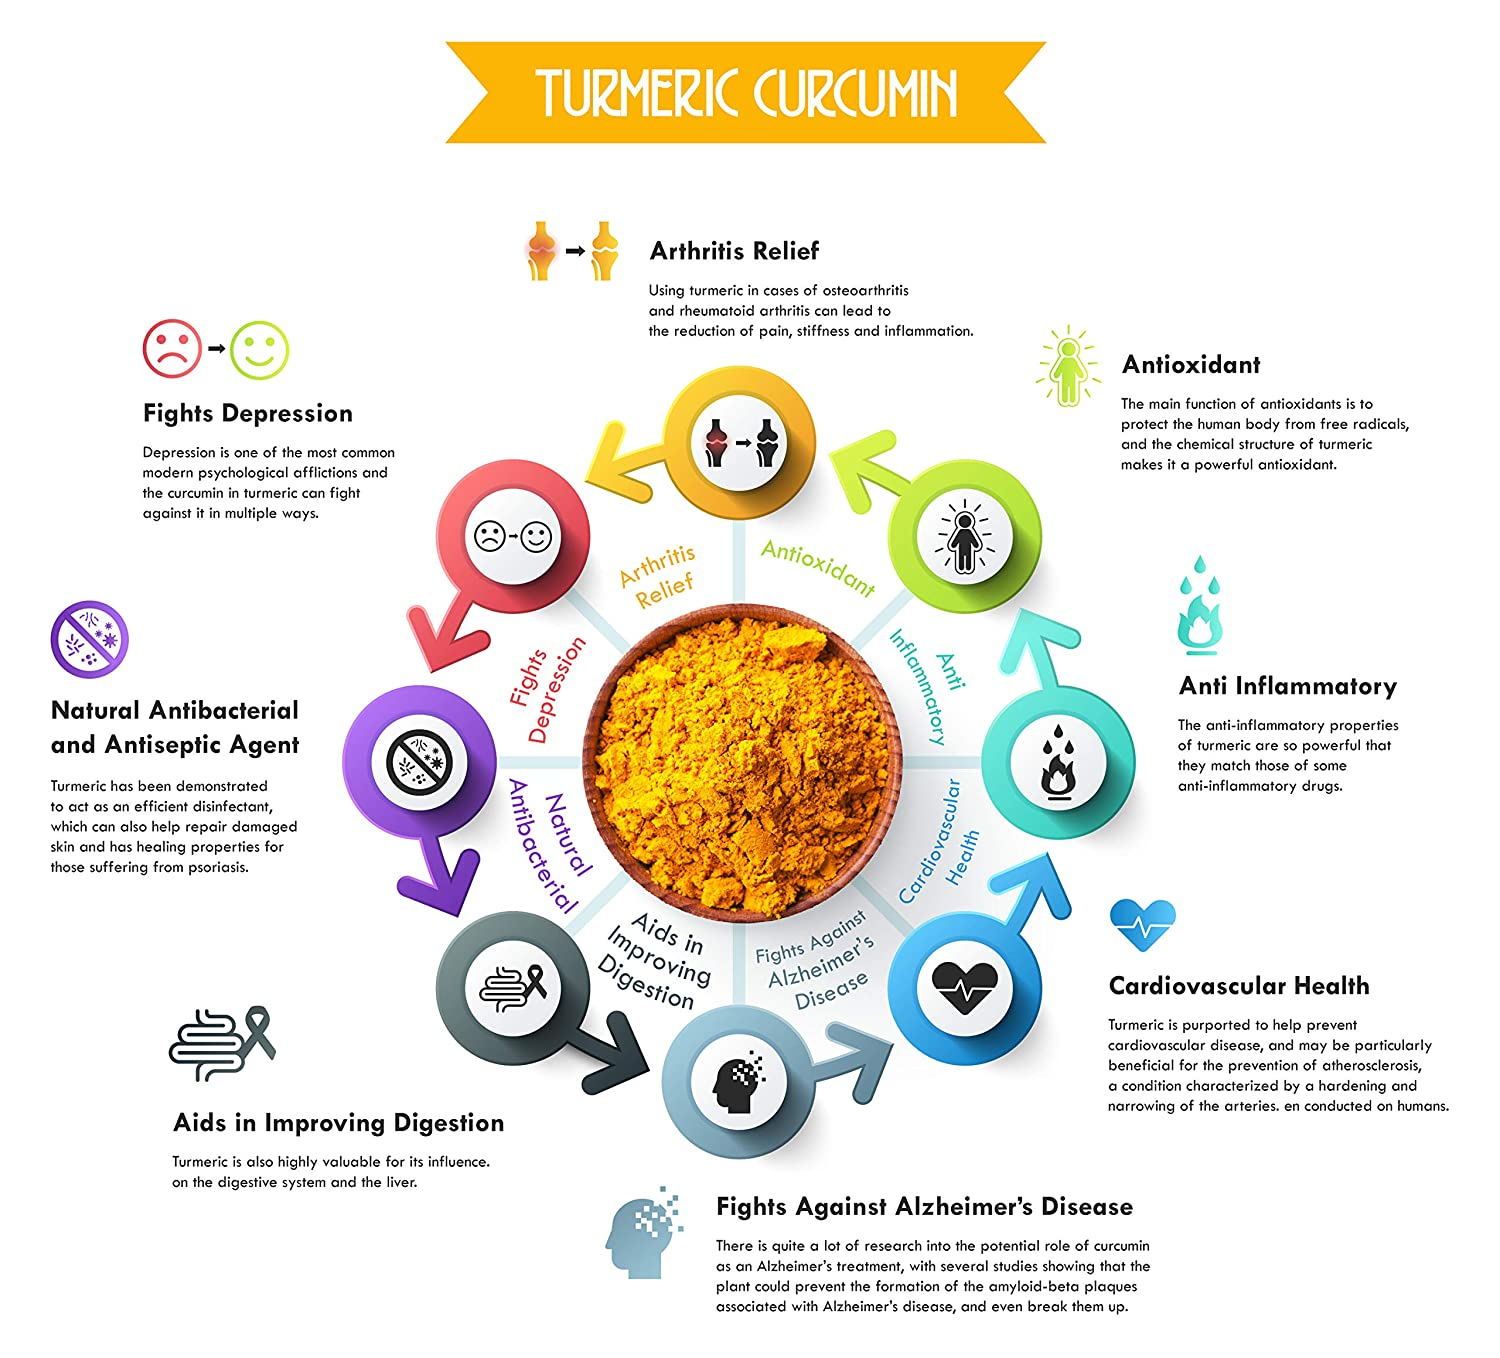 Amazon.com: Turmeric Curcumin with Bioperine Black Pepper Extract: Health & Personal Care